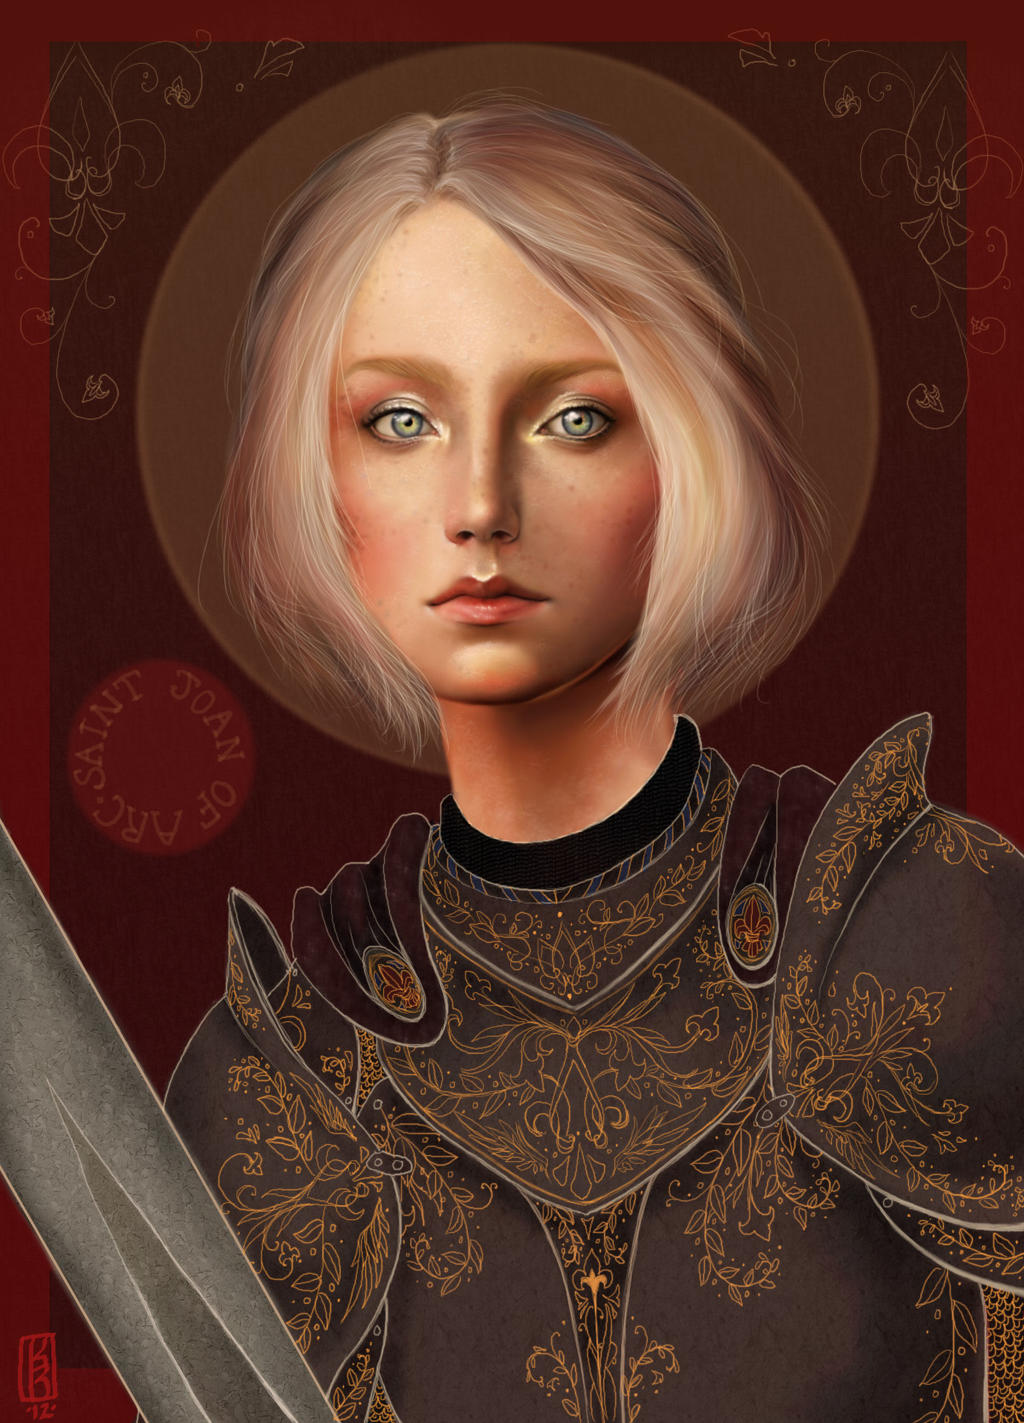 What are good resources on Joan of Arc?